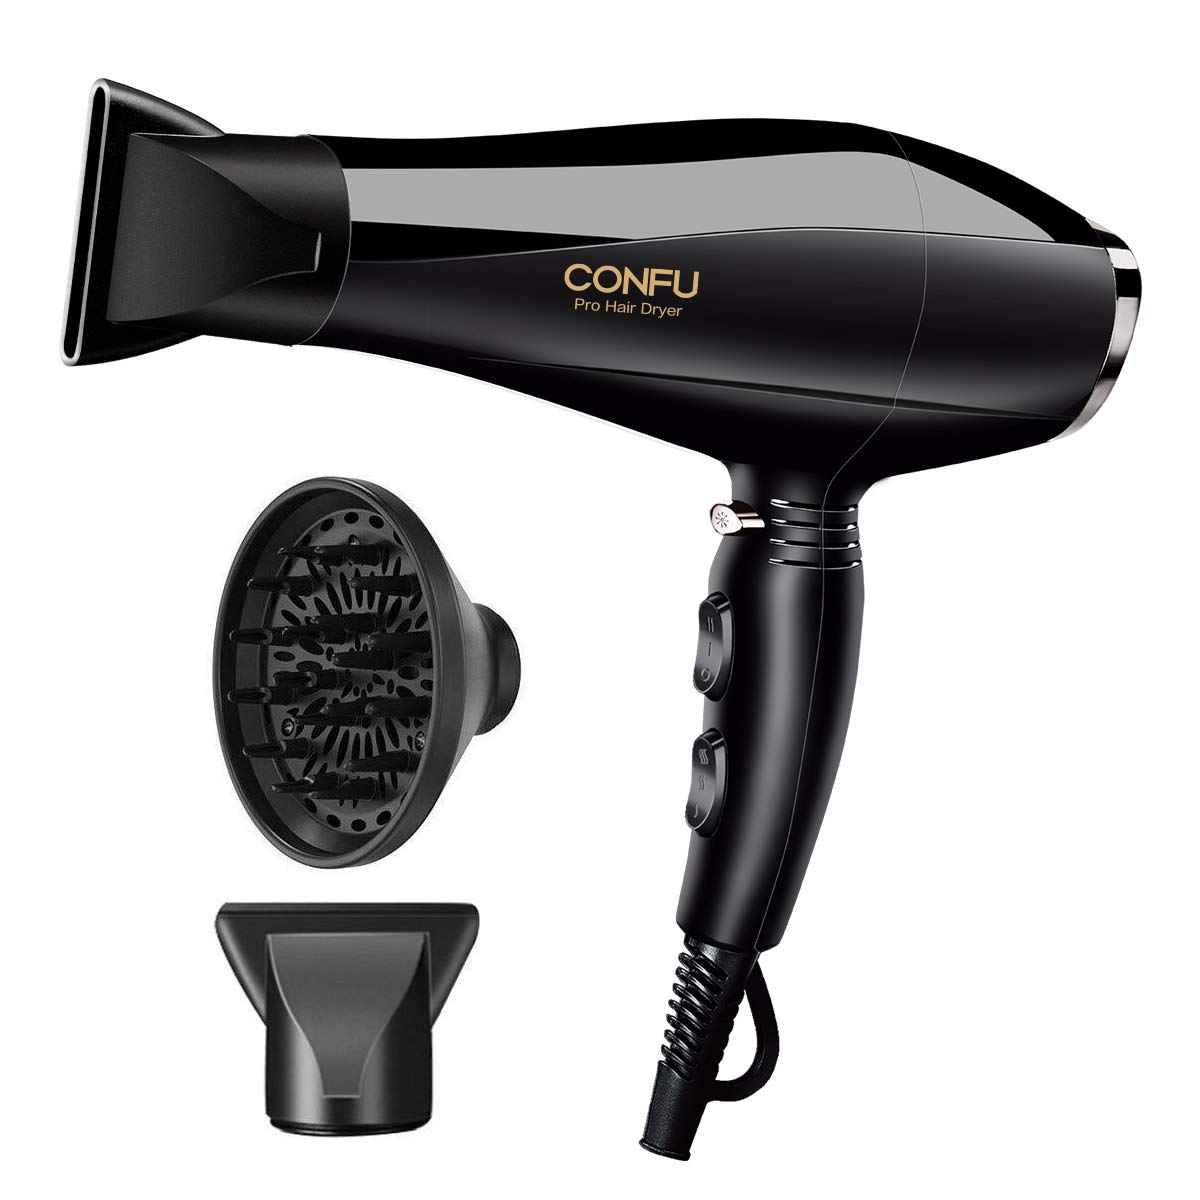 1875W Professional Salon CONFU Hair Dryer for Faster Drying, Negative Ion Blow Dryer with 2 Speed and 3 Heat Setting Hairdryer,AC Motor with Diffuser 2 Concentrator for Healthy Hair